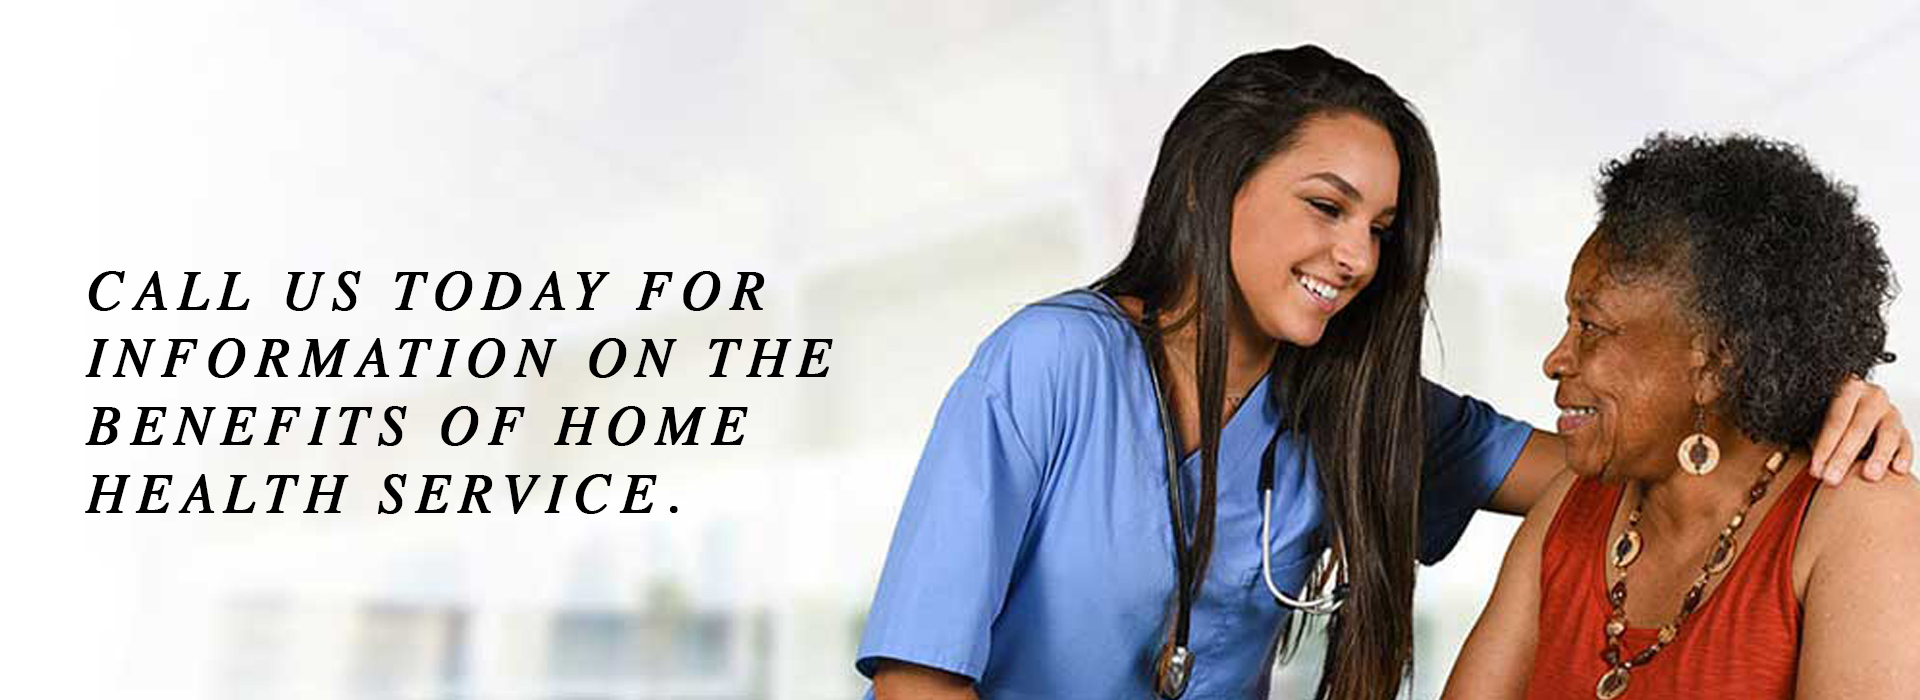 Call Us Today For Information on The Benefits of Home Health Service.